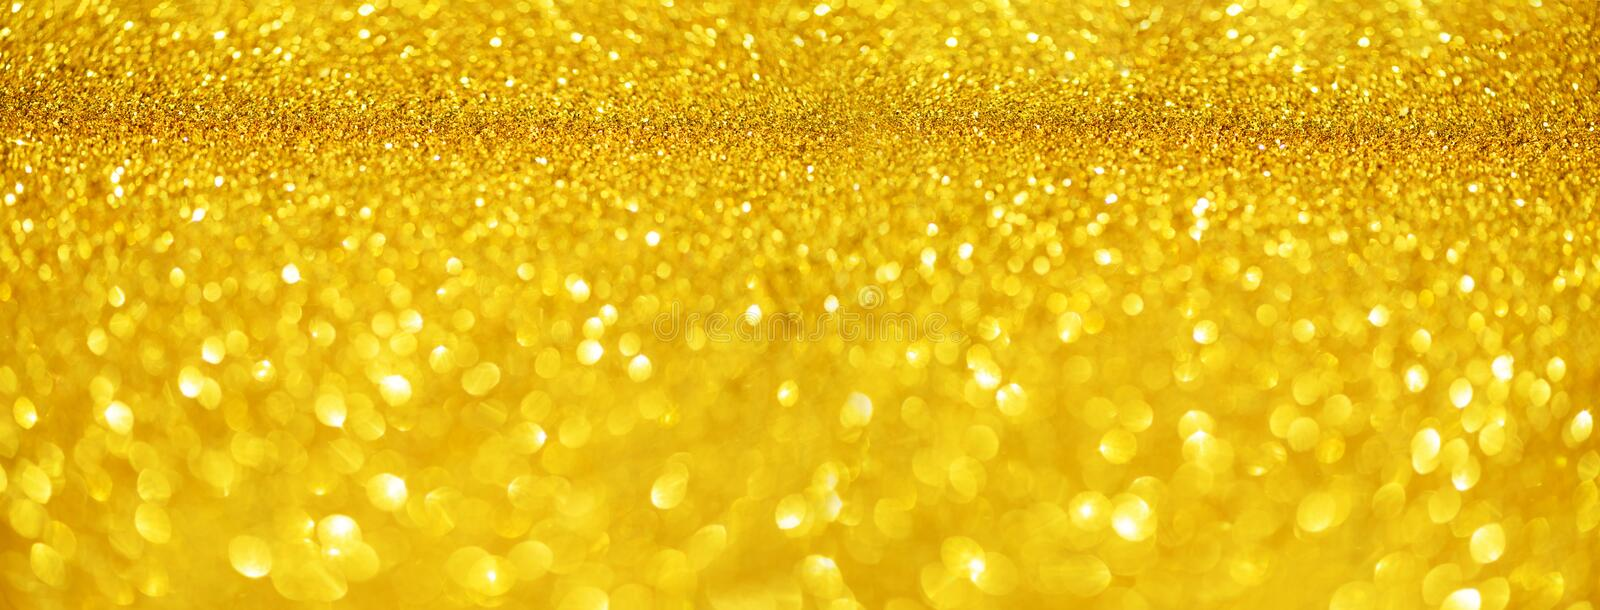 Gold glitter banner. Shiny abstract textured background with golden lights, bokeh. Christmas, new year concept with copy space for. Your greeting stock image